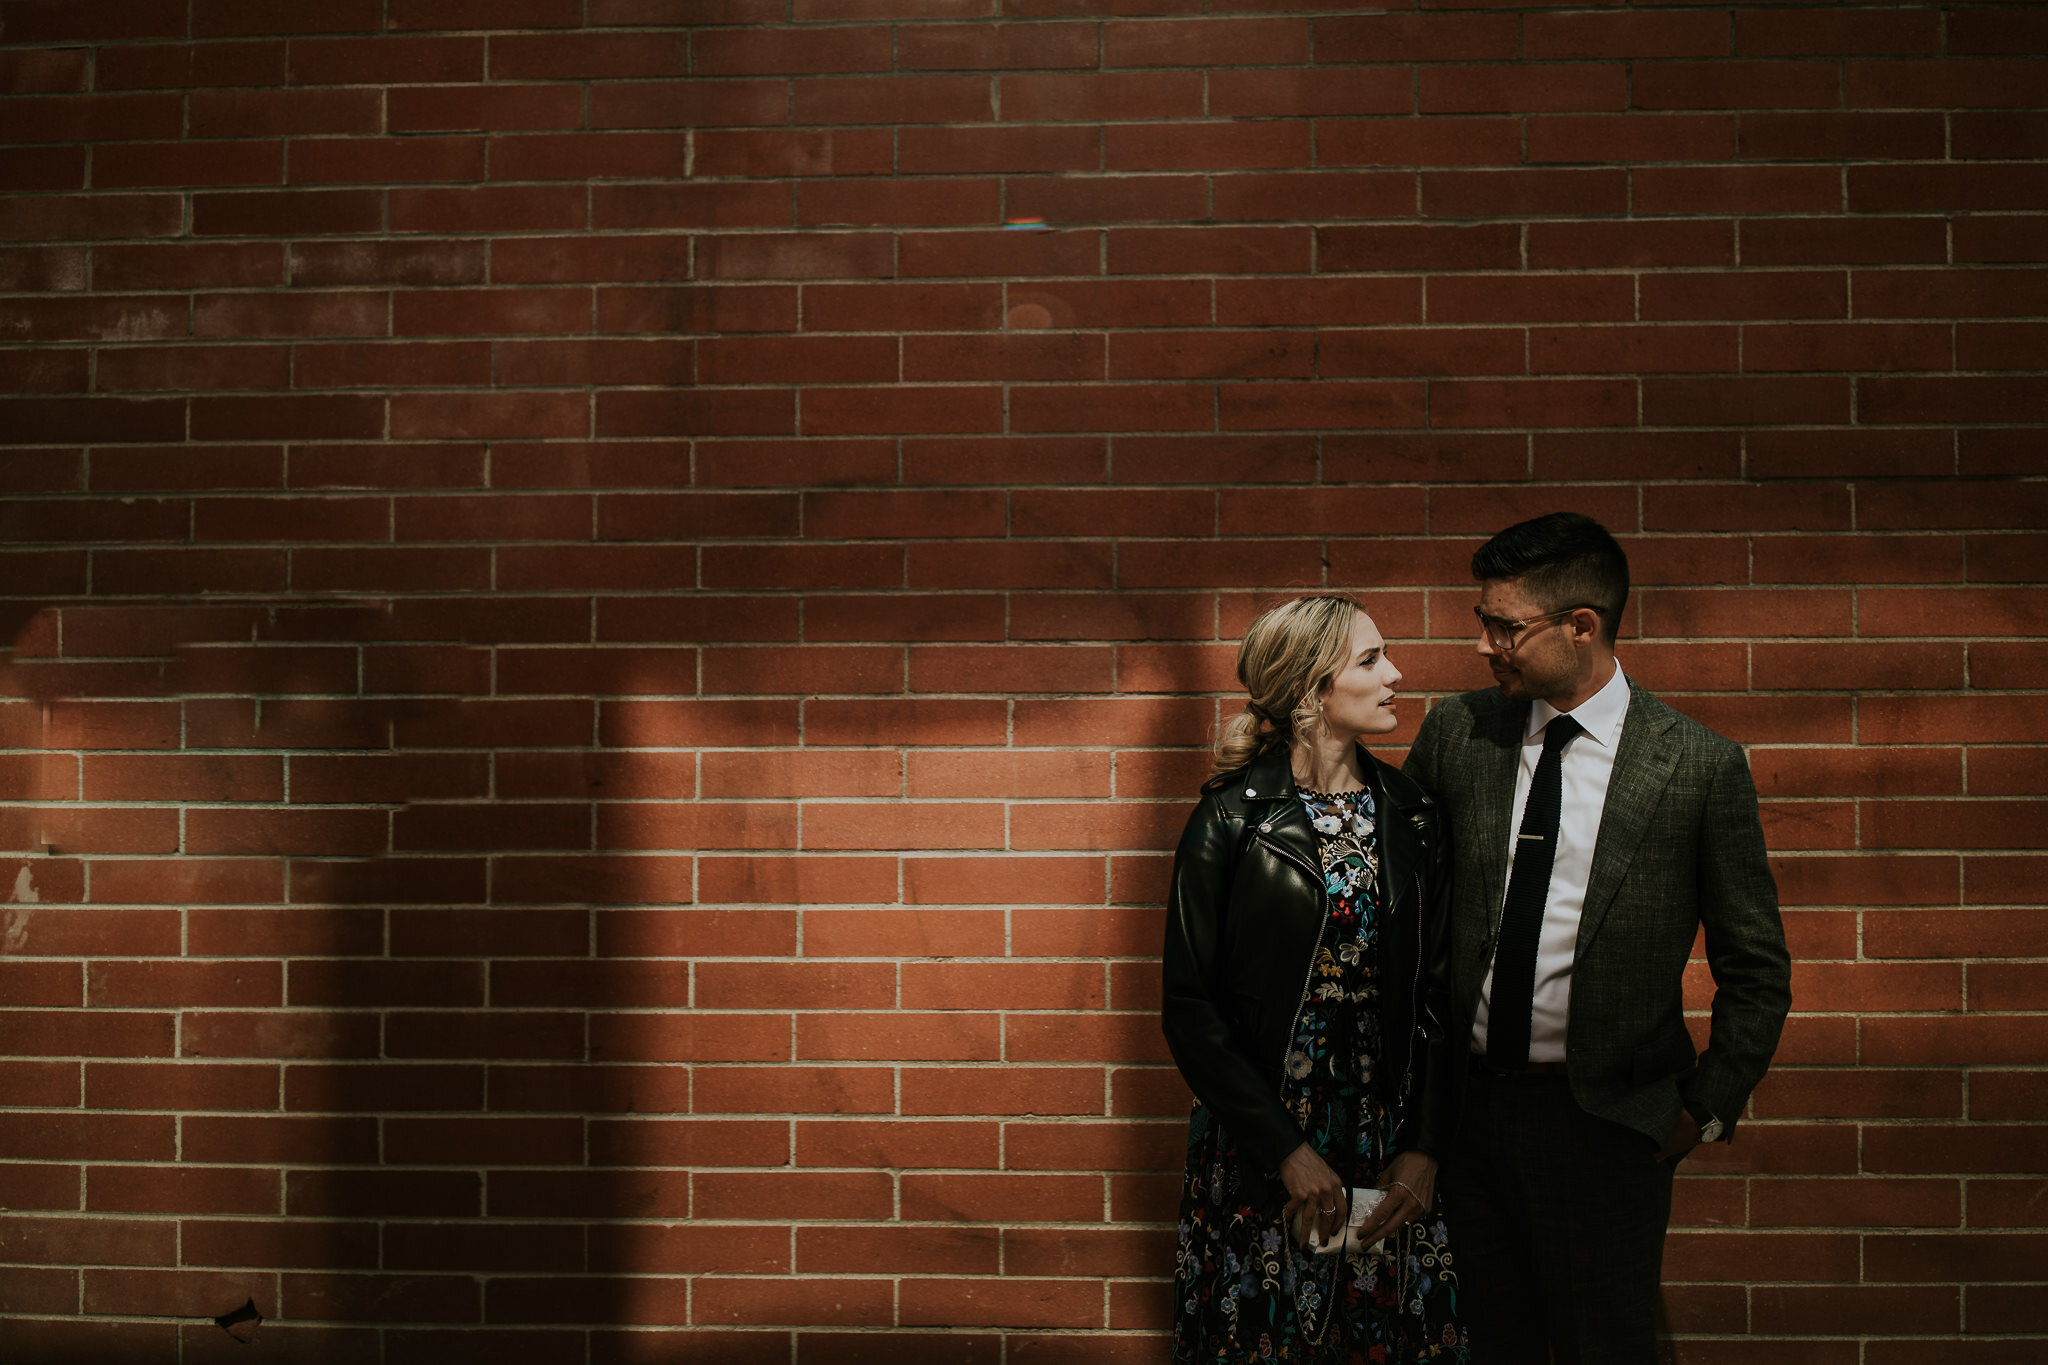 Urban wedding photos in downtown Calgary